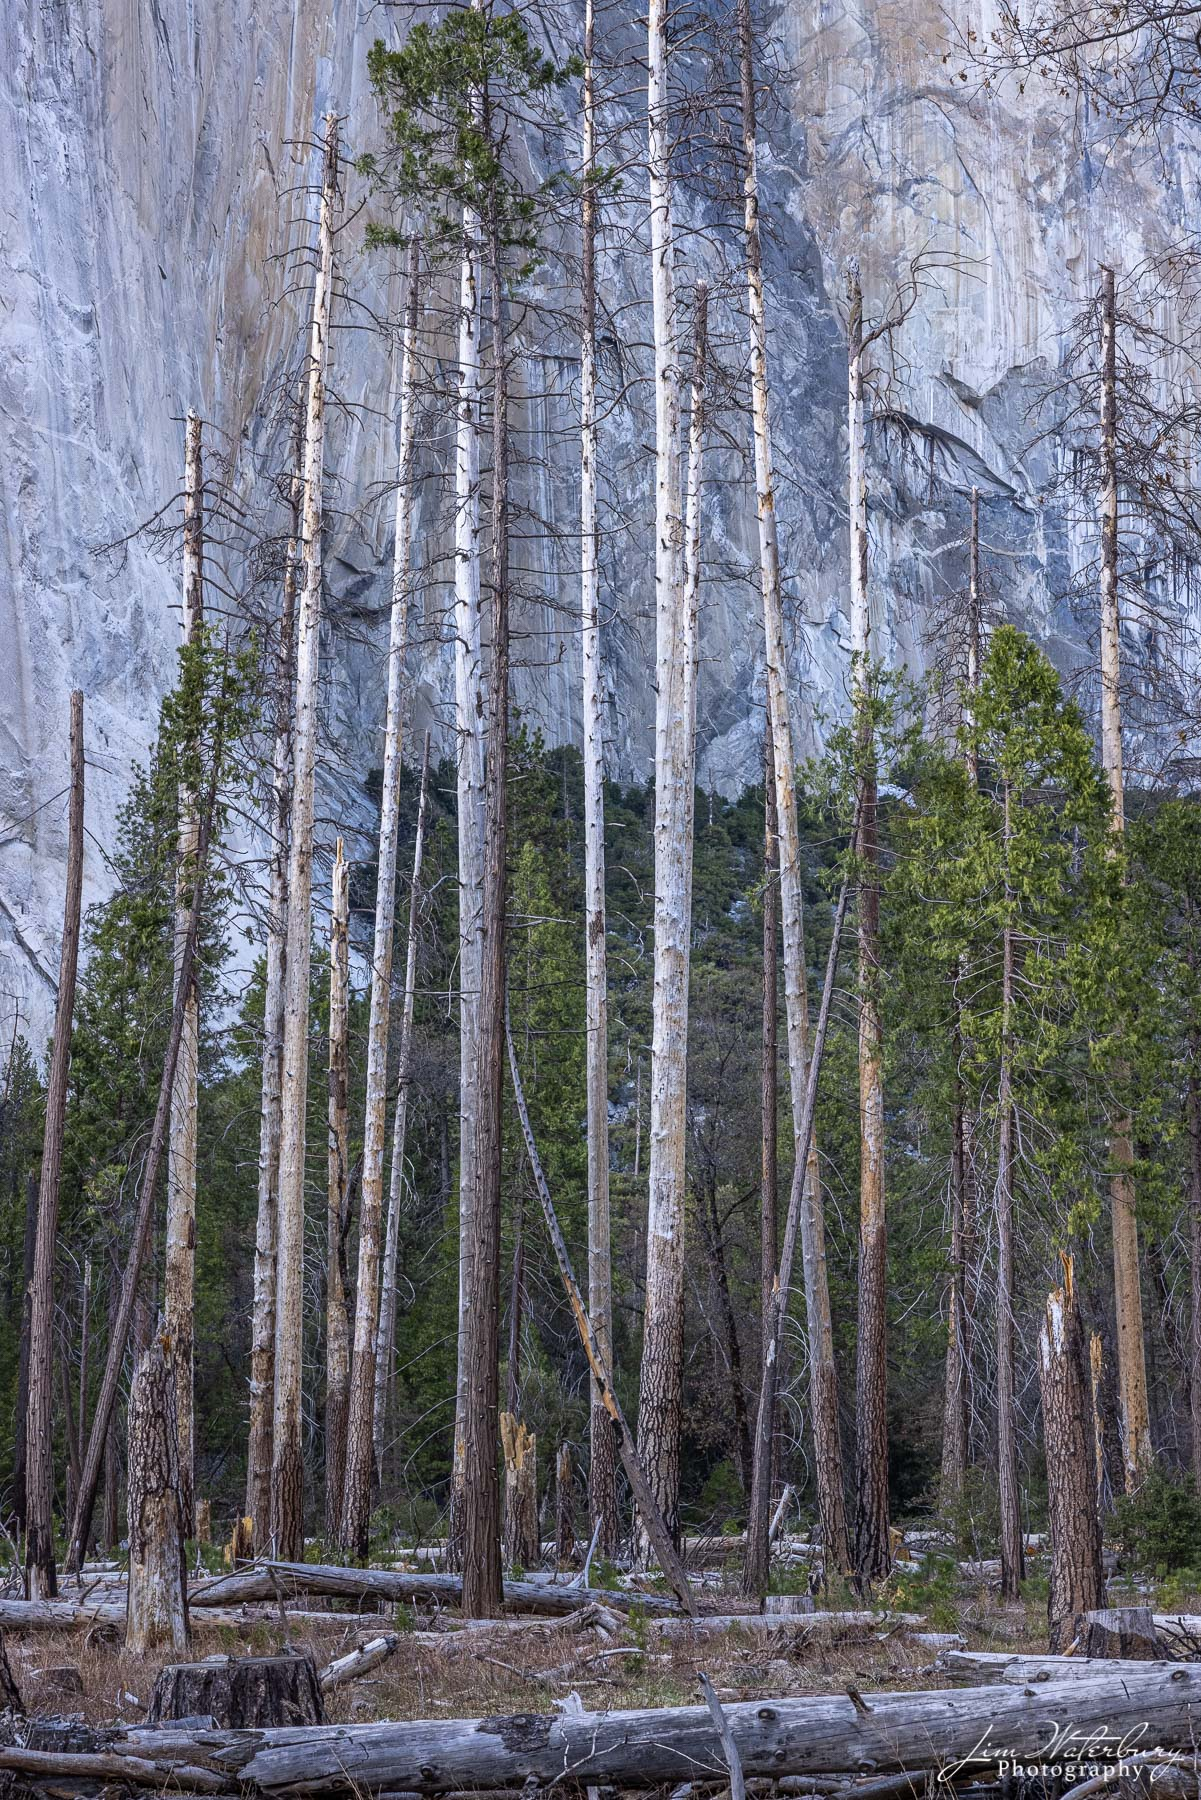 Trees on the floor of Yosemite Valley, the victim of severe winter storms, and damage from a multi-year drought.